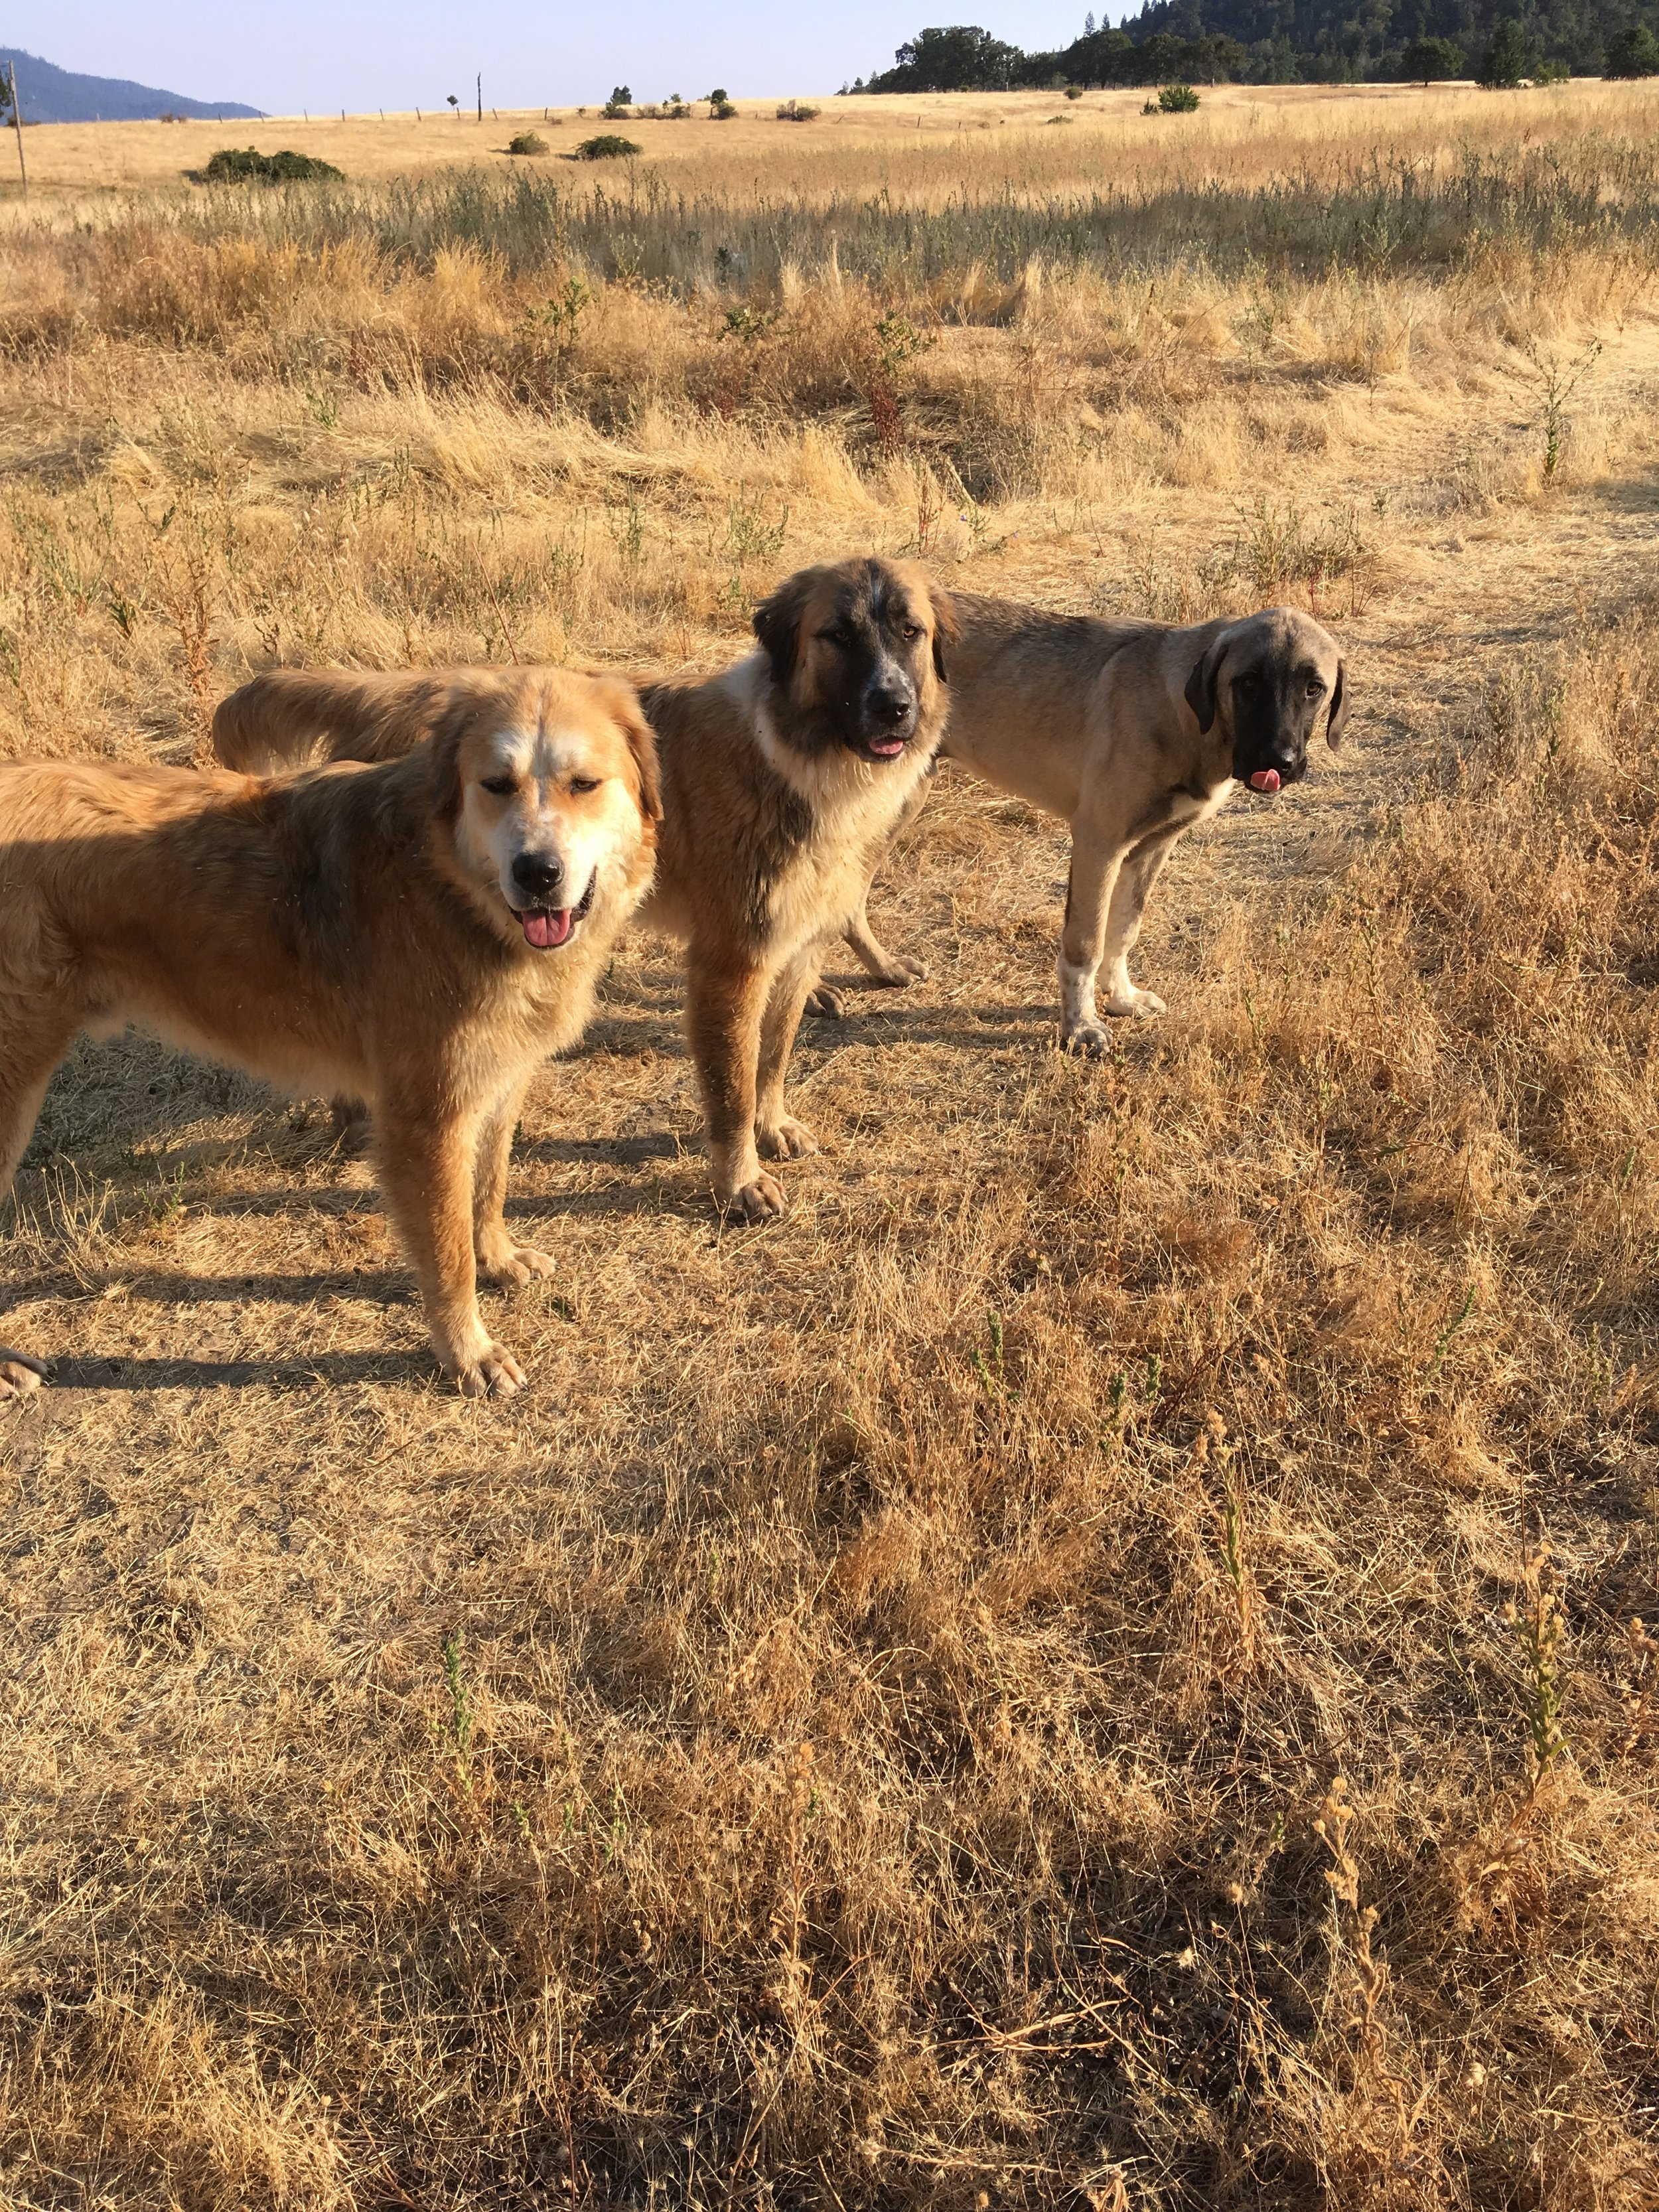 Sugarfield guardians: Riff Raff, Delilah and Lugo. Hey, you three...shouldn't you be with the sheep?